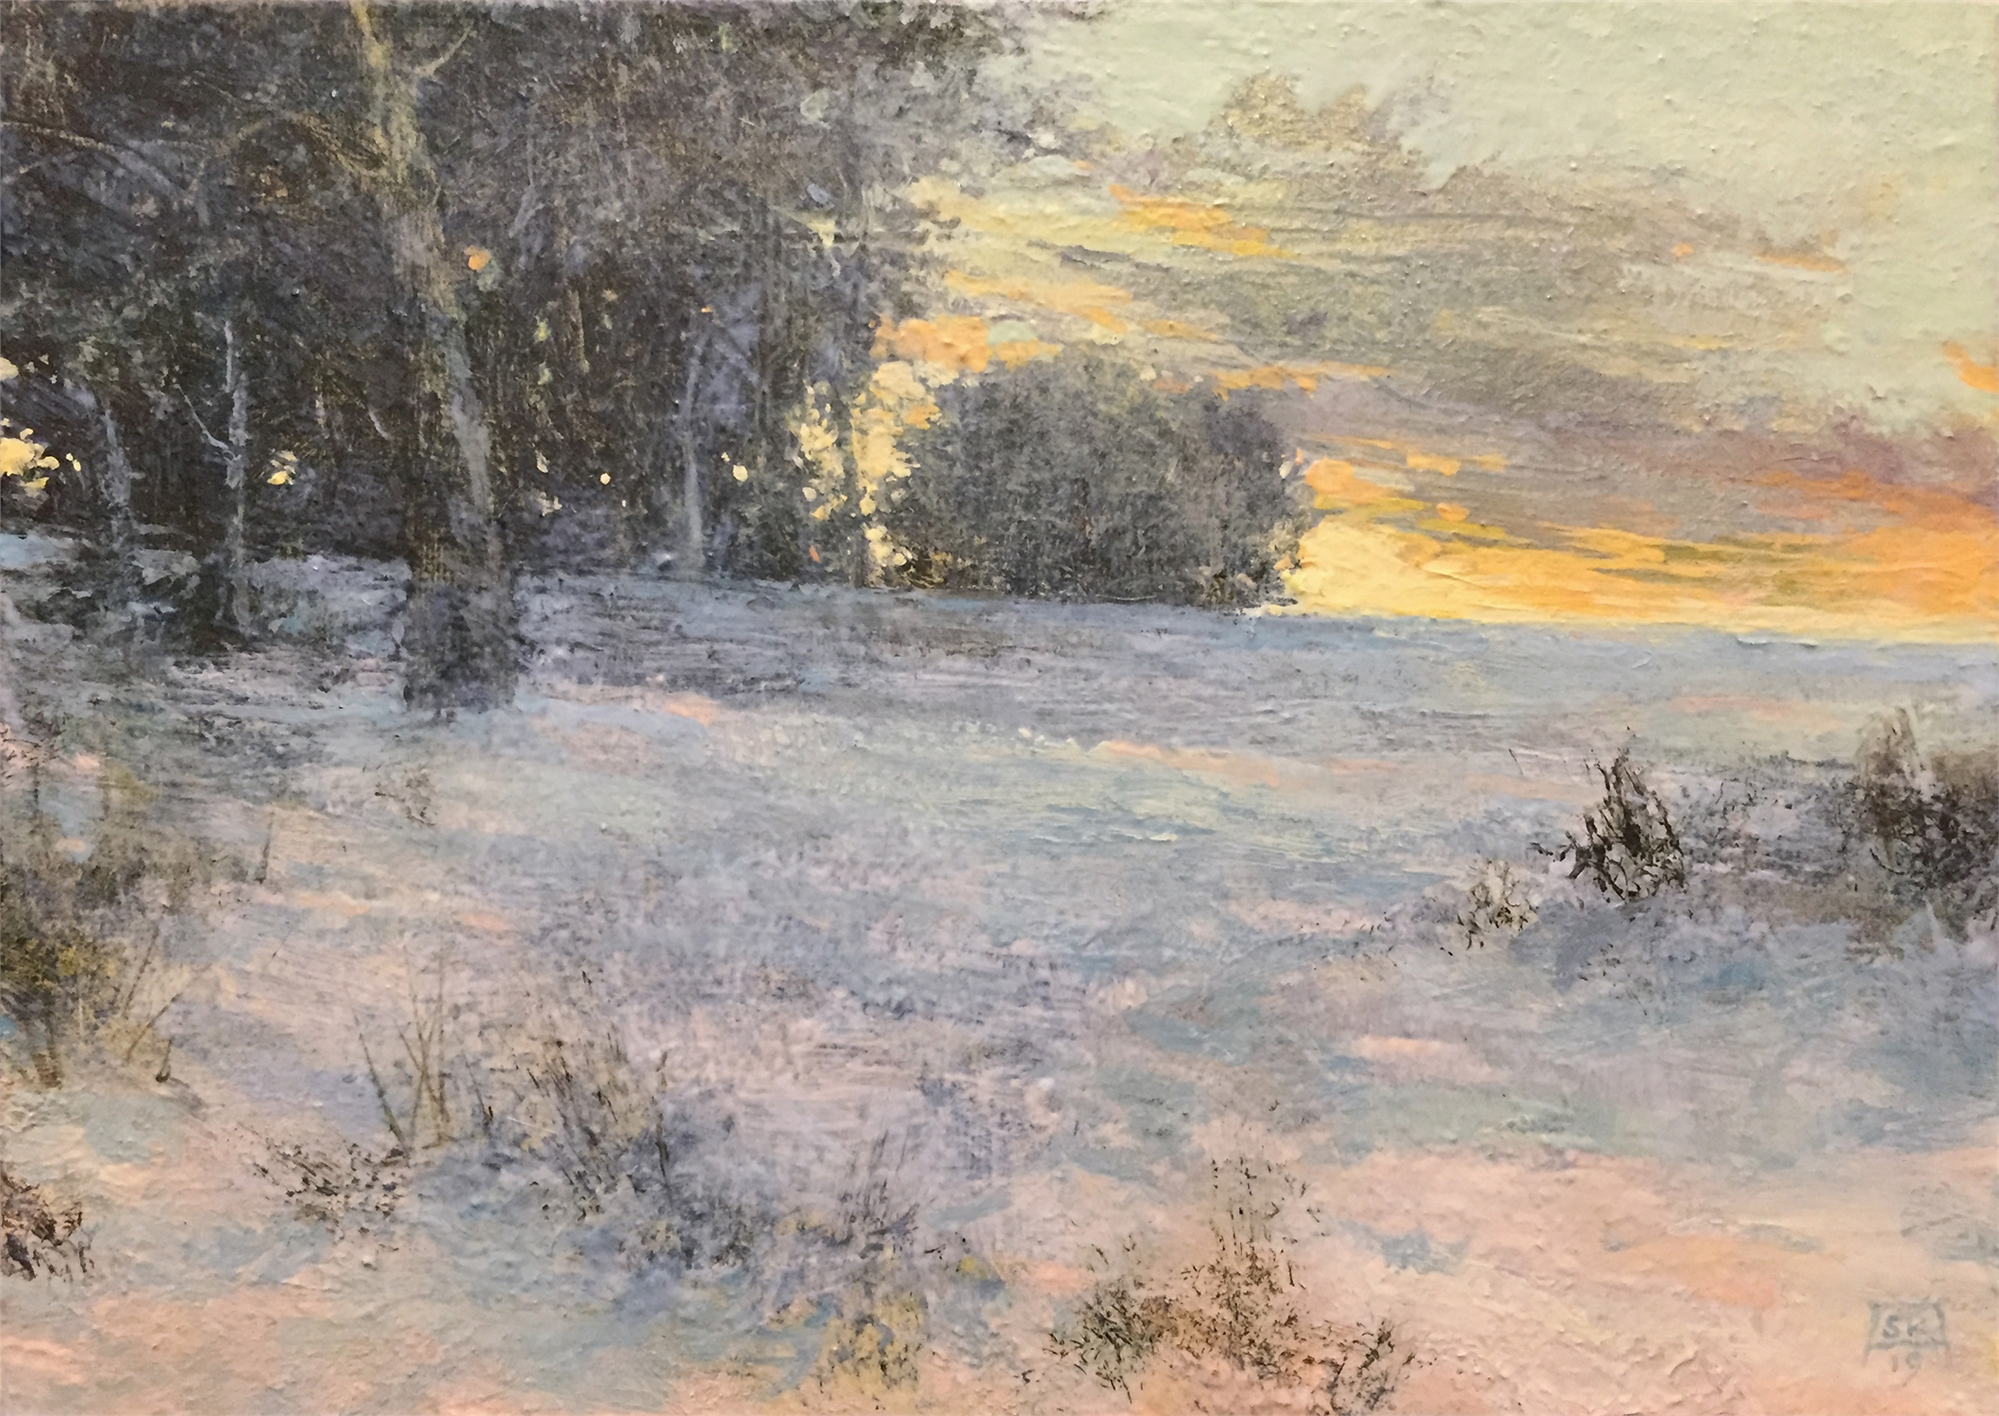 The Clearing (Winter) by Shawn Krueger